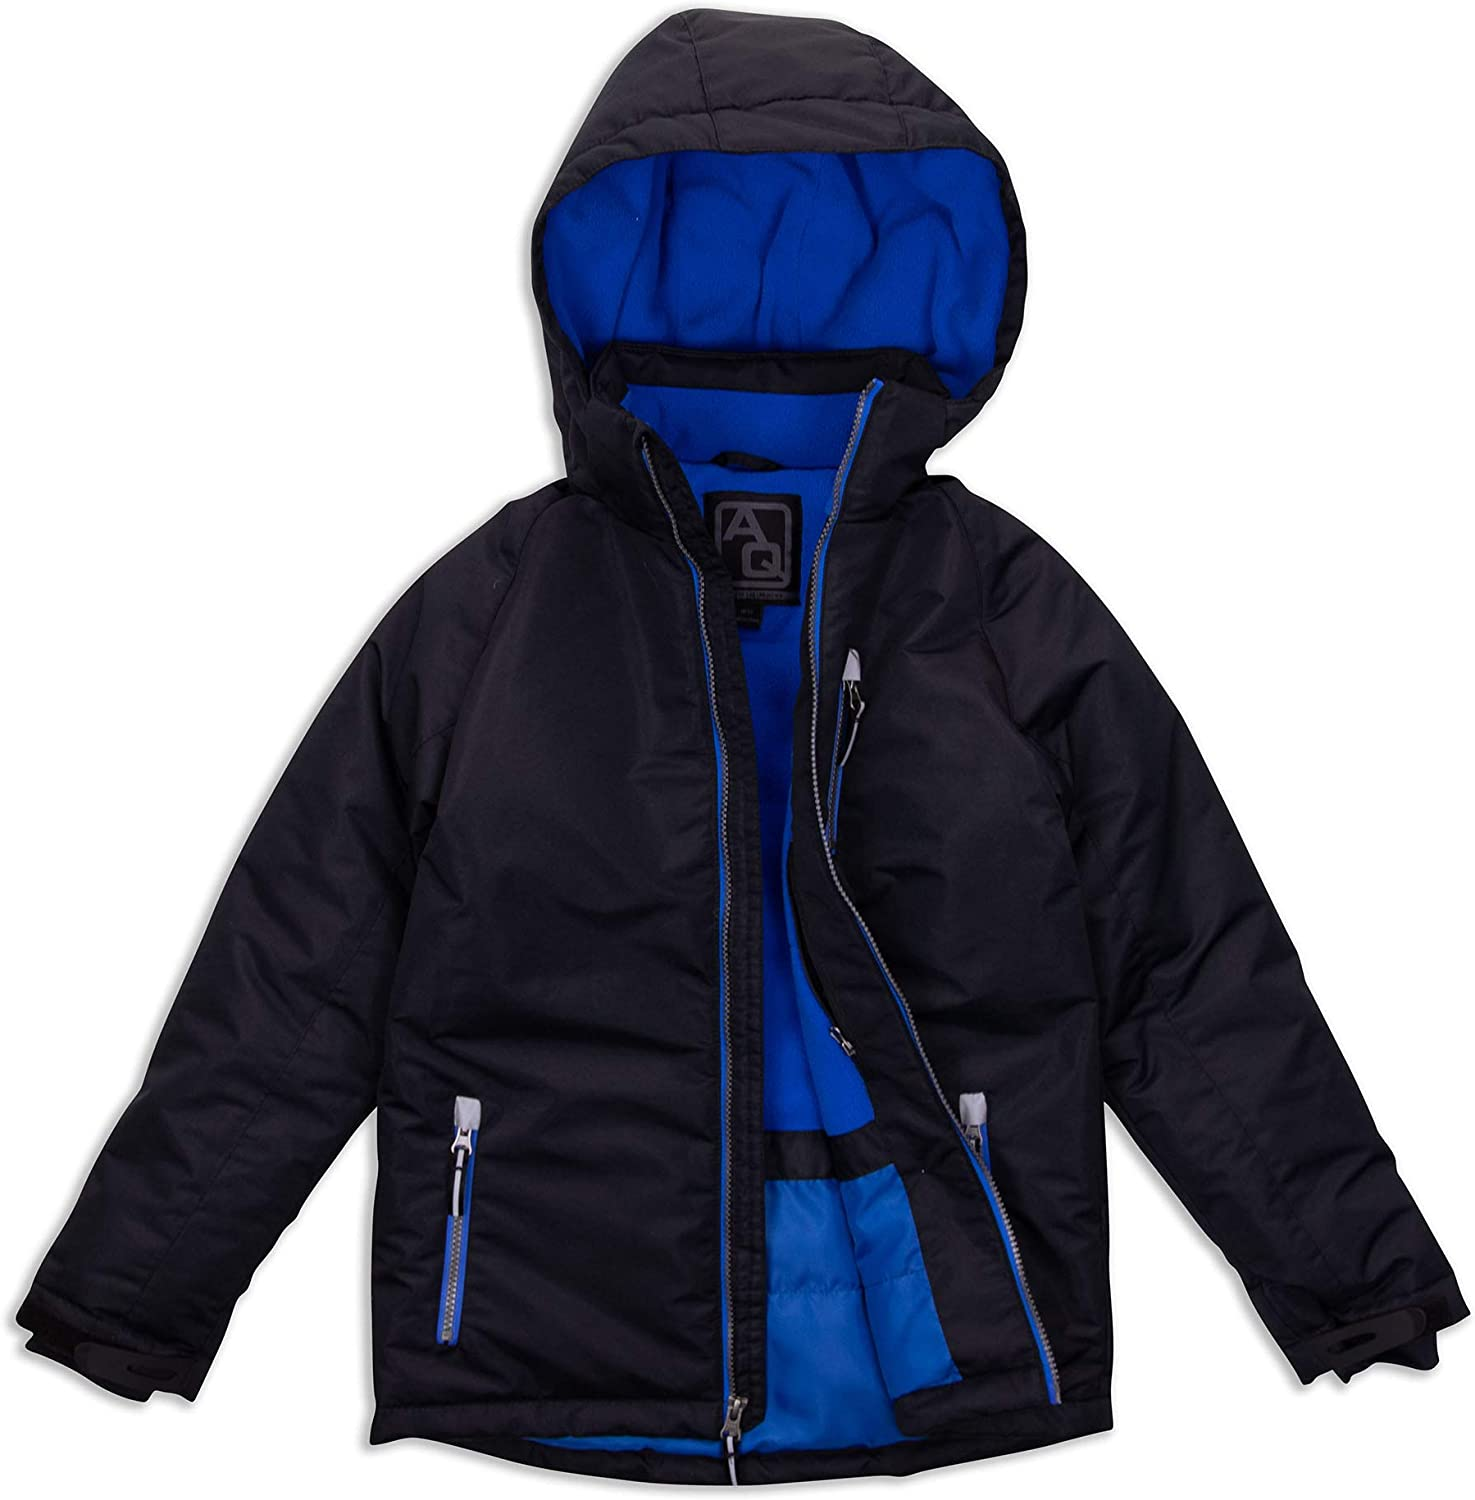 Arctic Quest Boys Windproof Waterproof Insulated Hooded Winter Snow and Ski Jacket with Zippered Pockets: Clothing